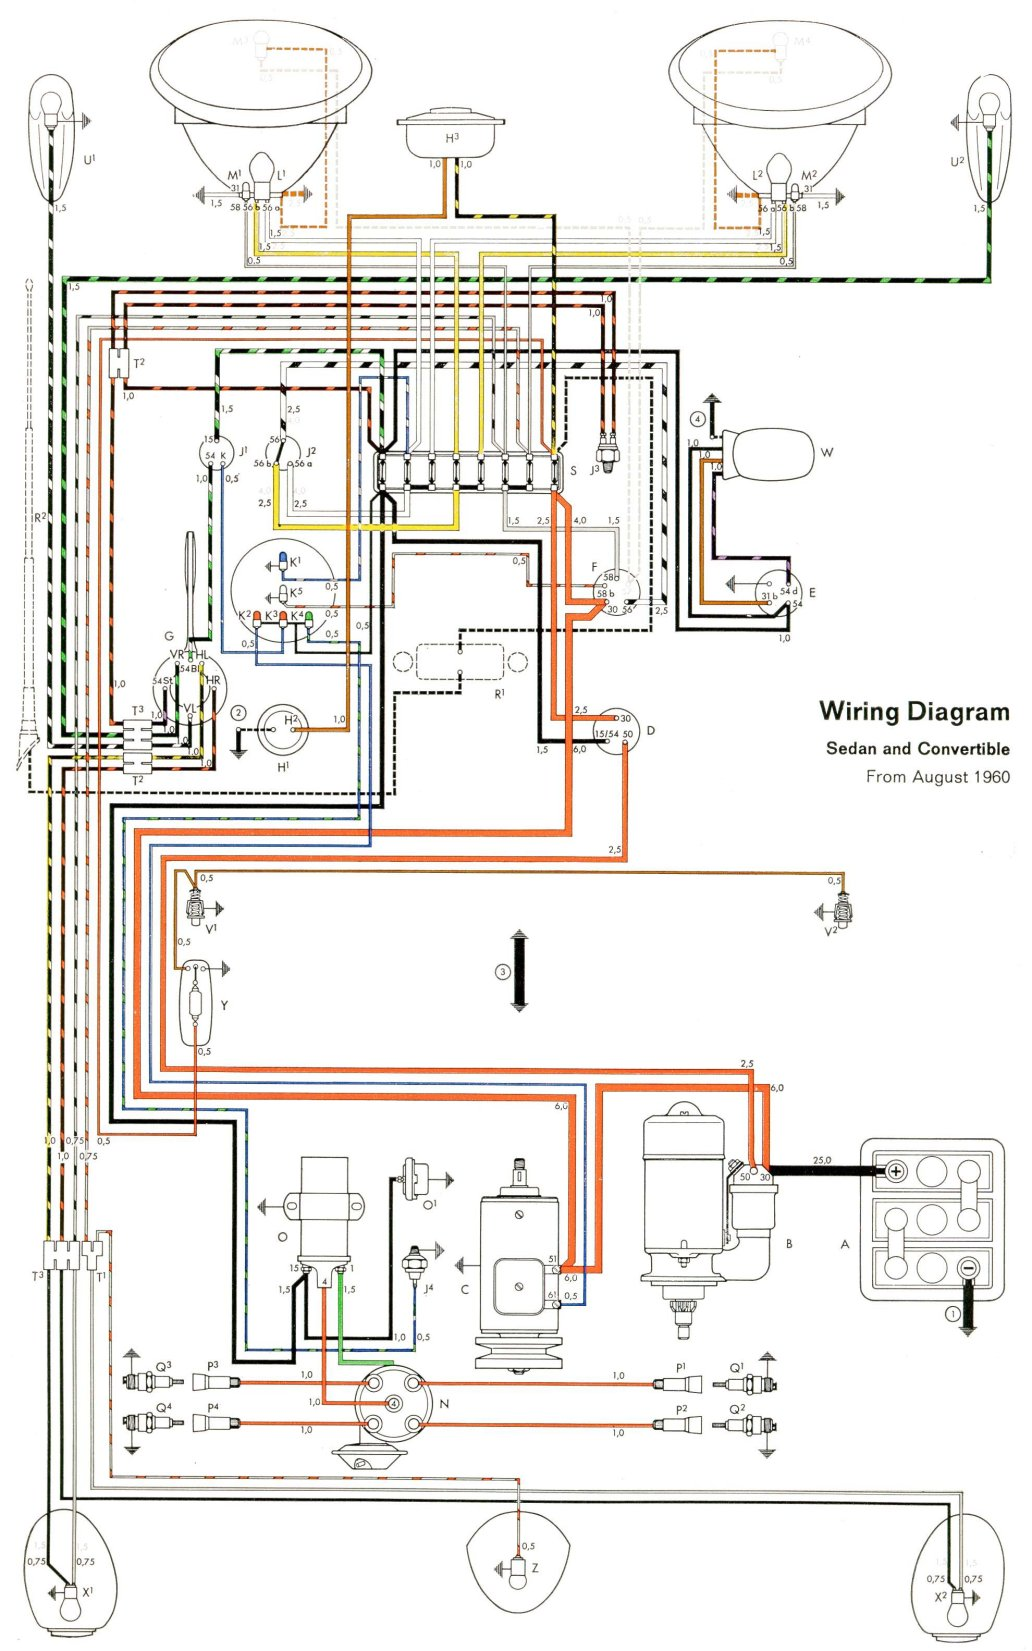 TheSamba.com :: Type 1 Wiring Diagrams The Samba